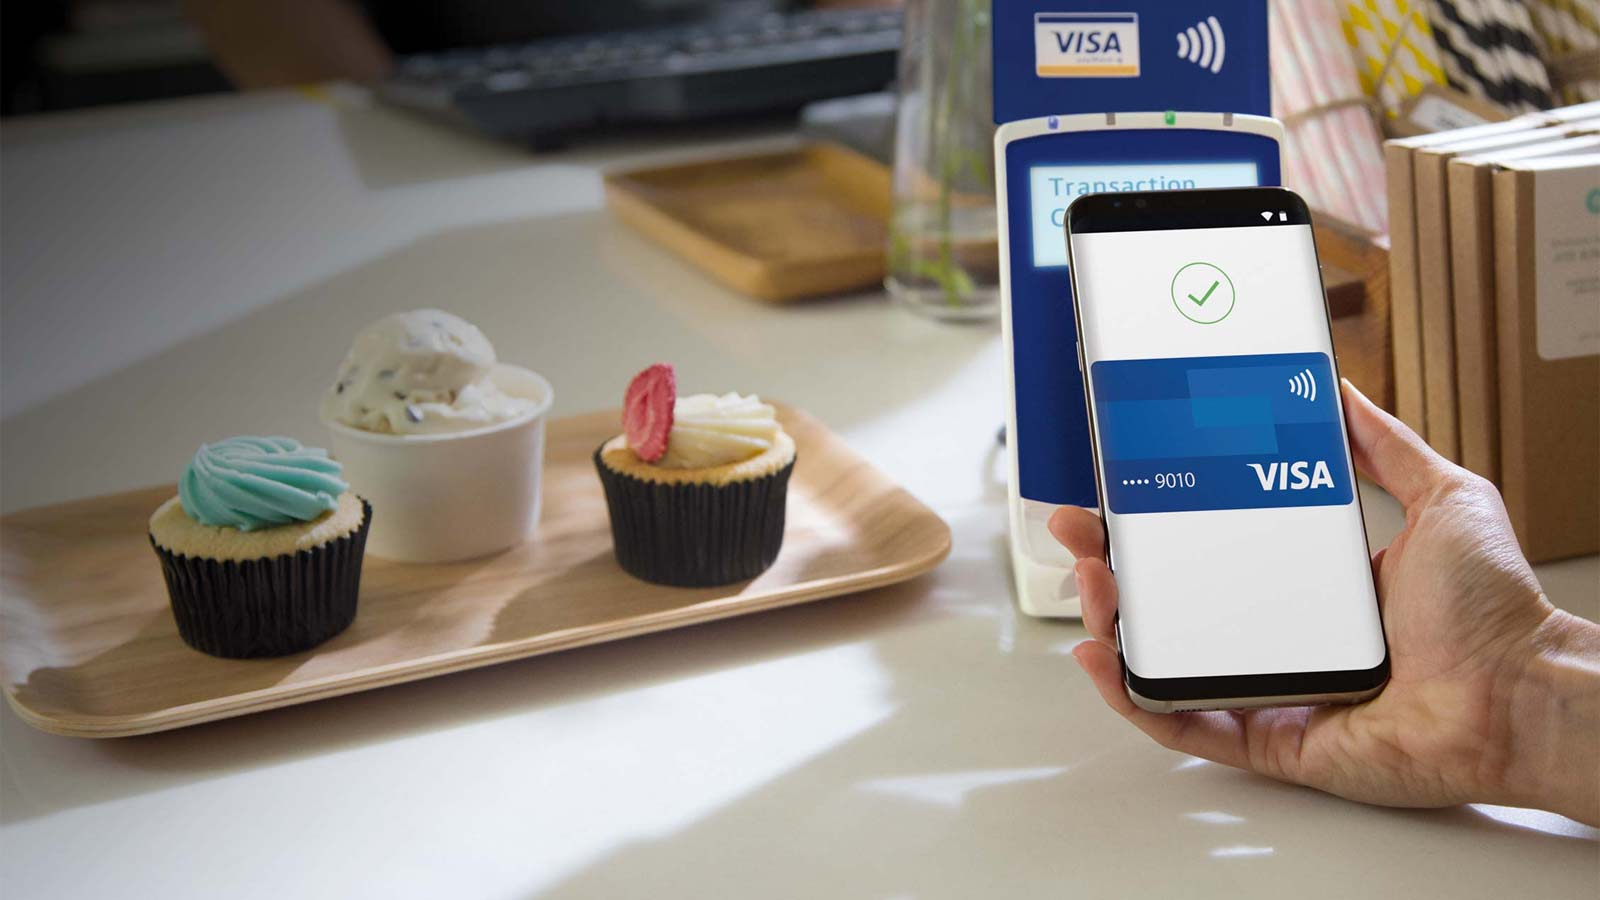 Mobile contactless payment